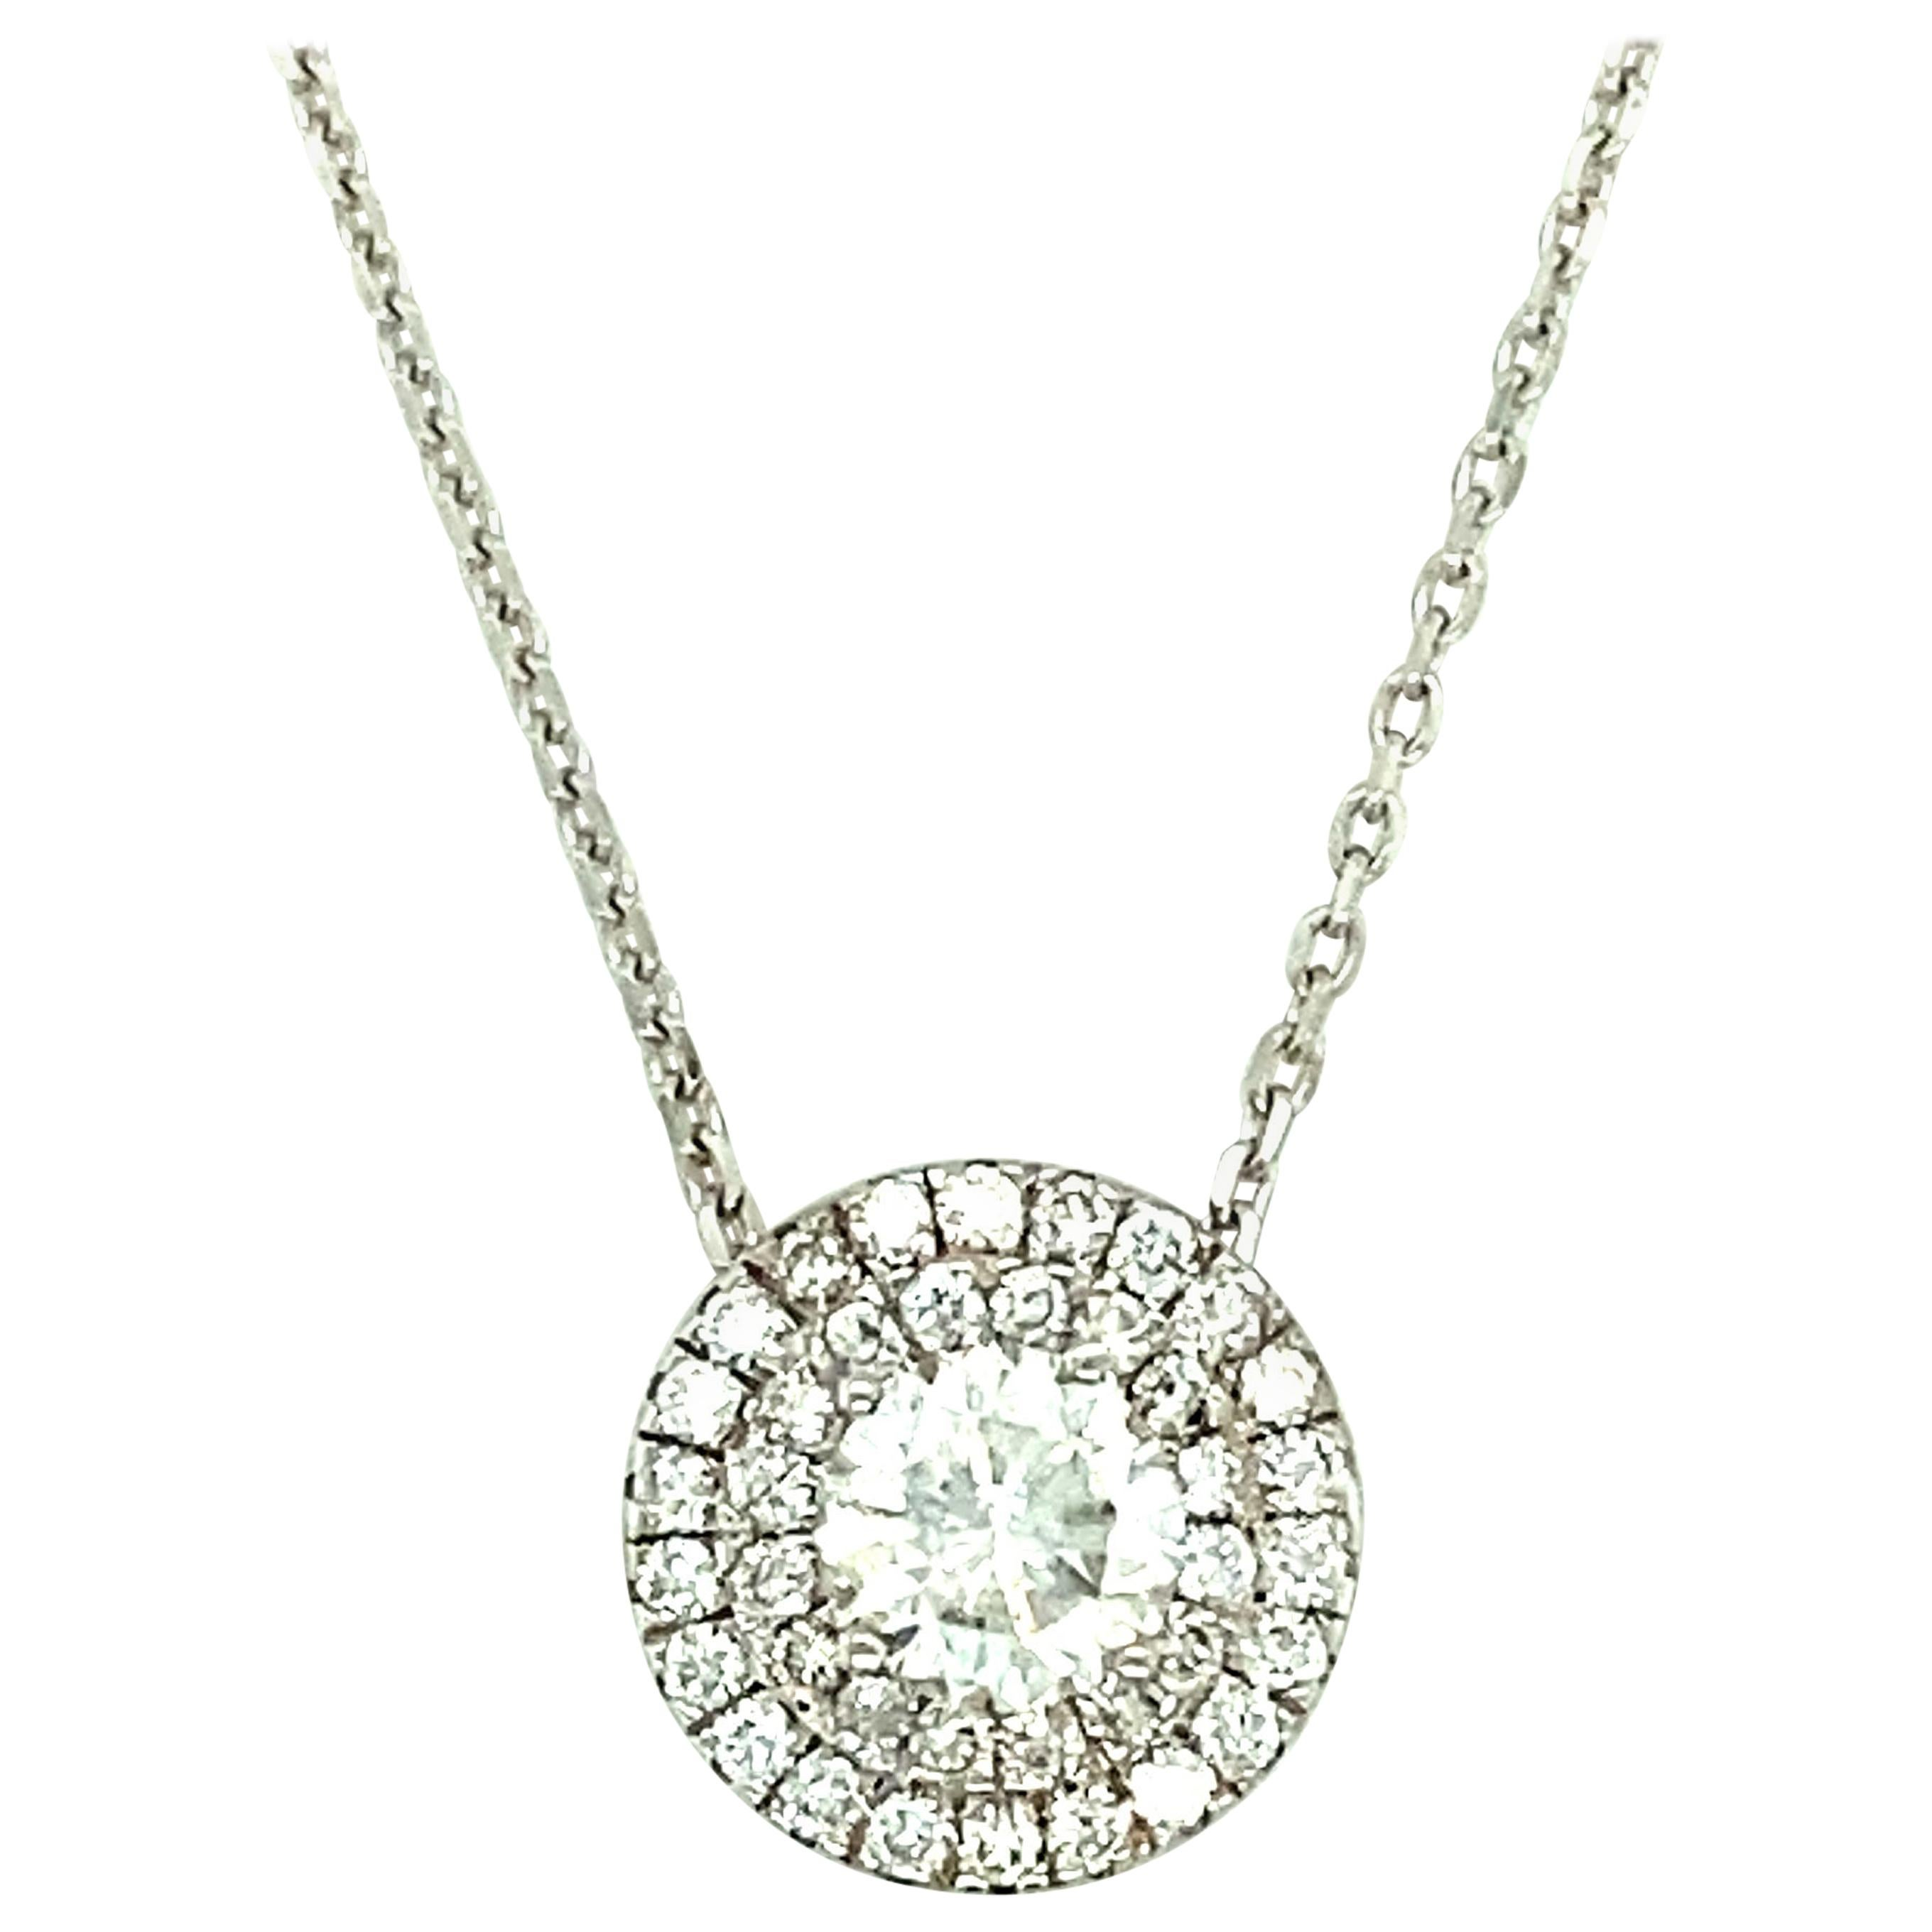 1.45 ct White Gold Diamond Pendant with Necklace, 14kt White Gold